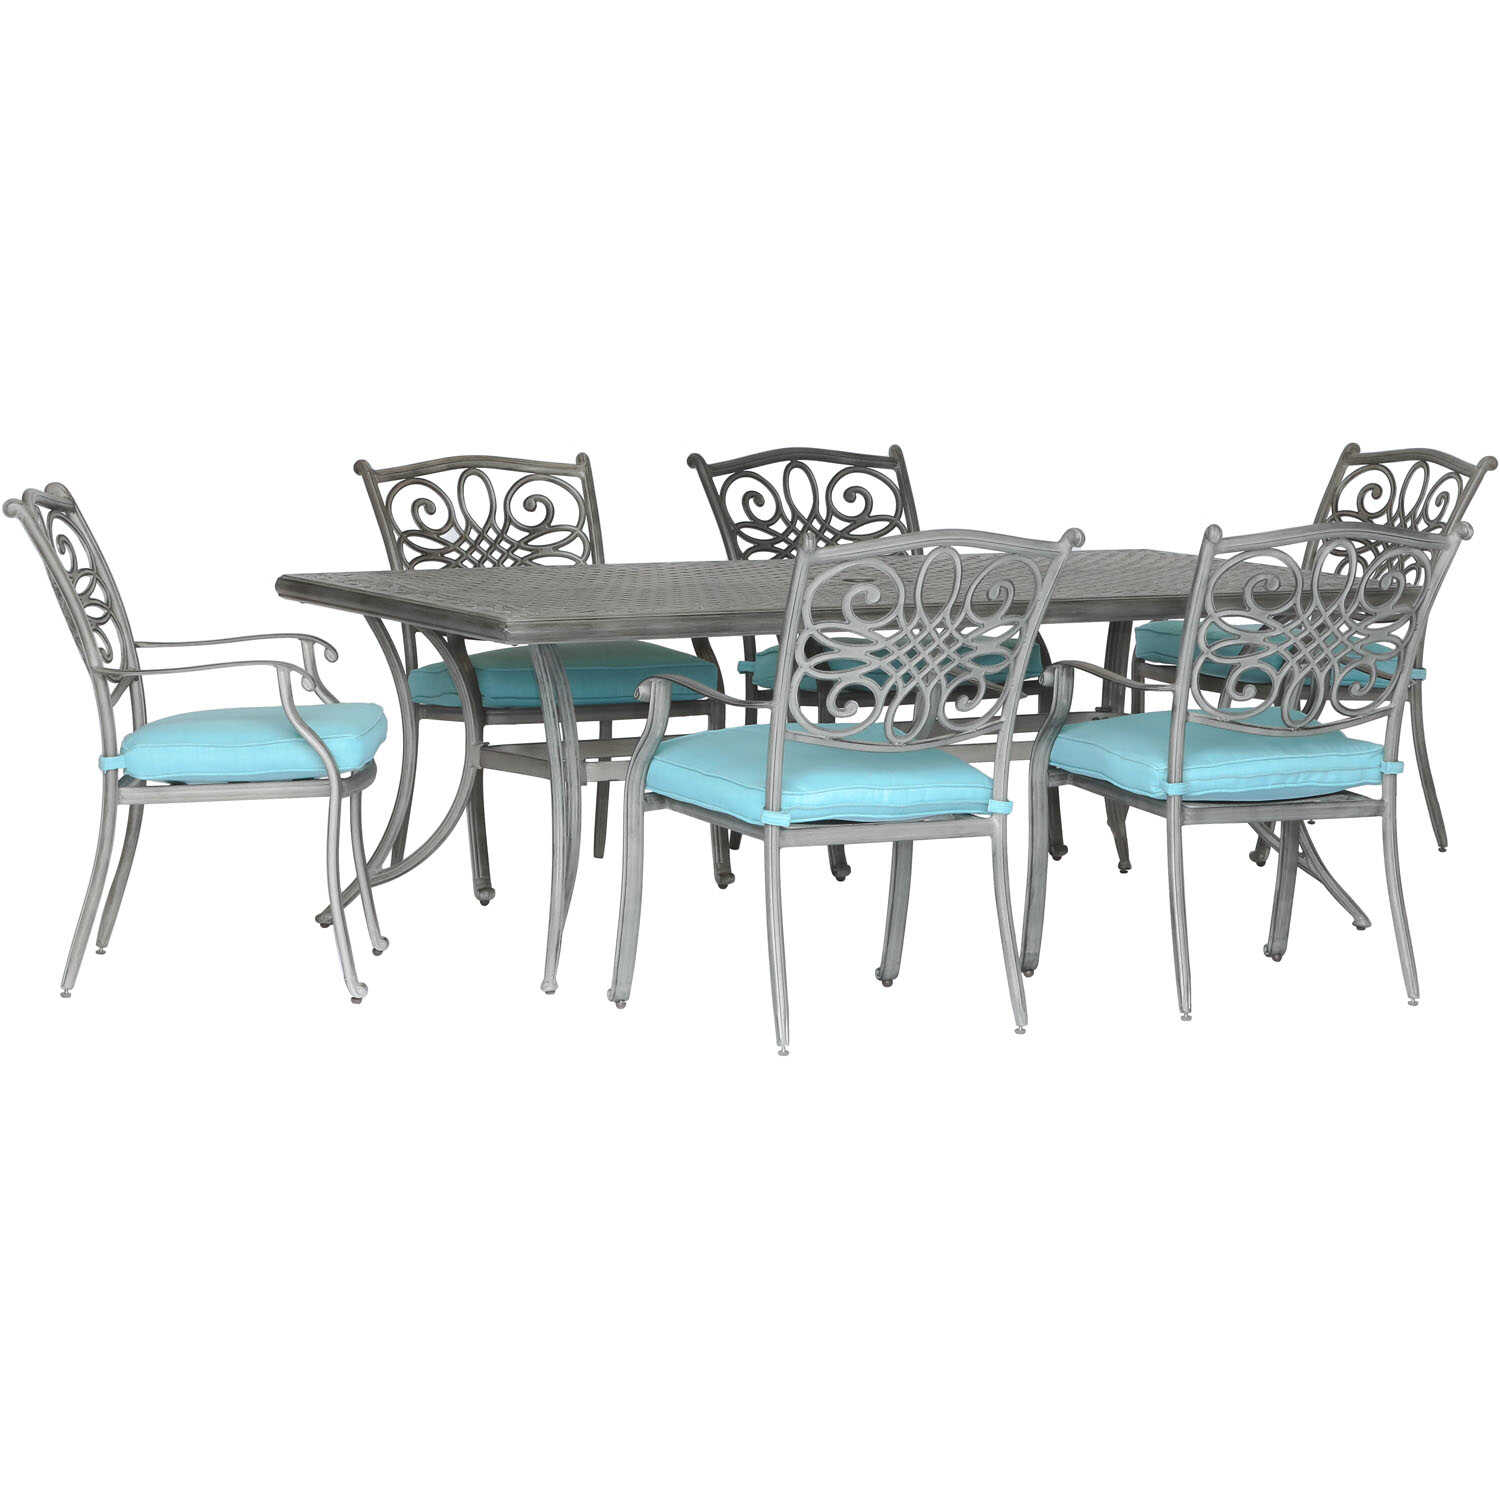 Hanover  Traditions  7 pc. Gray  Aluminum  Dining Set  Blue